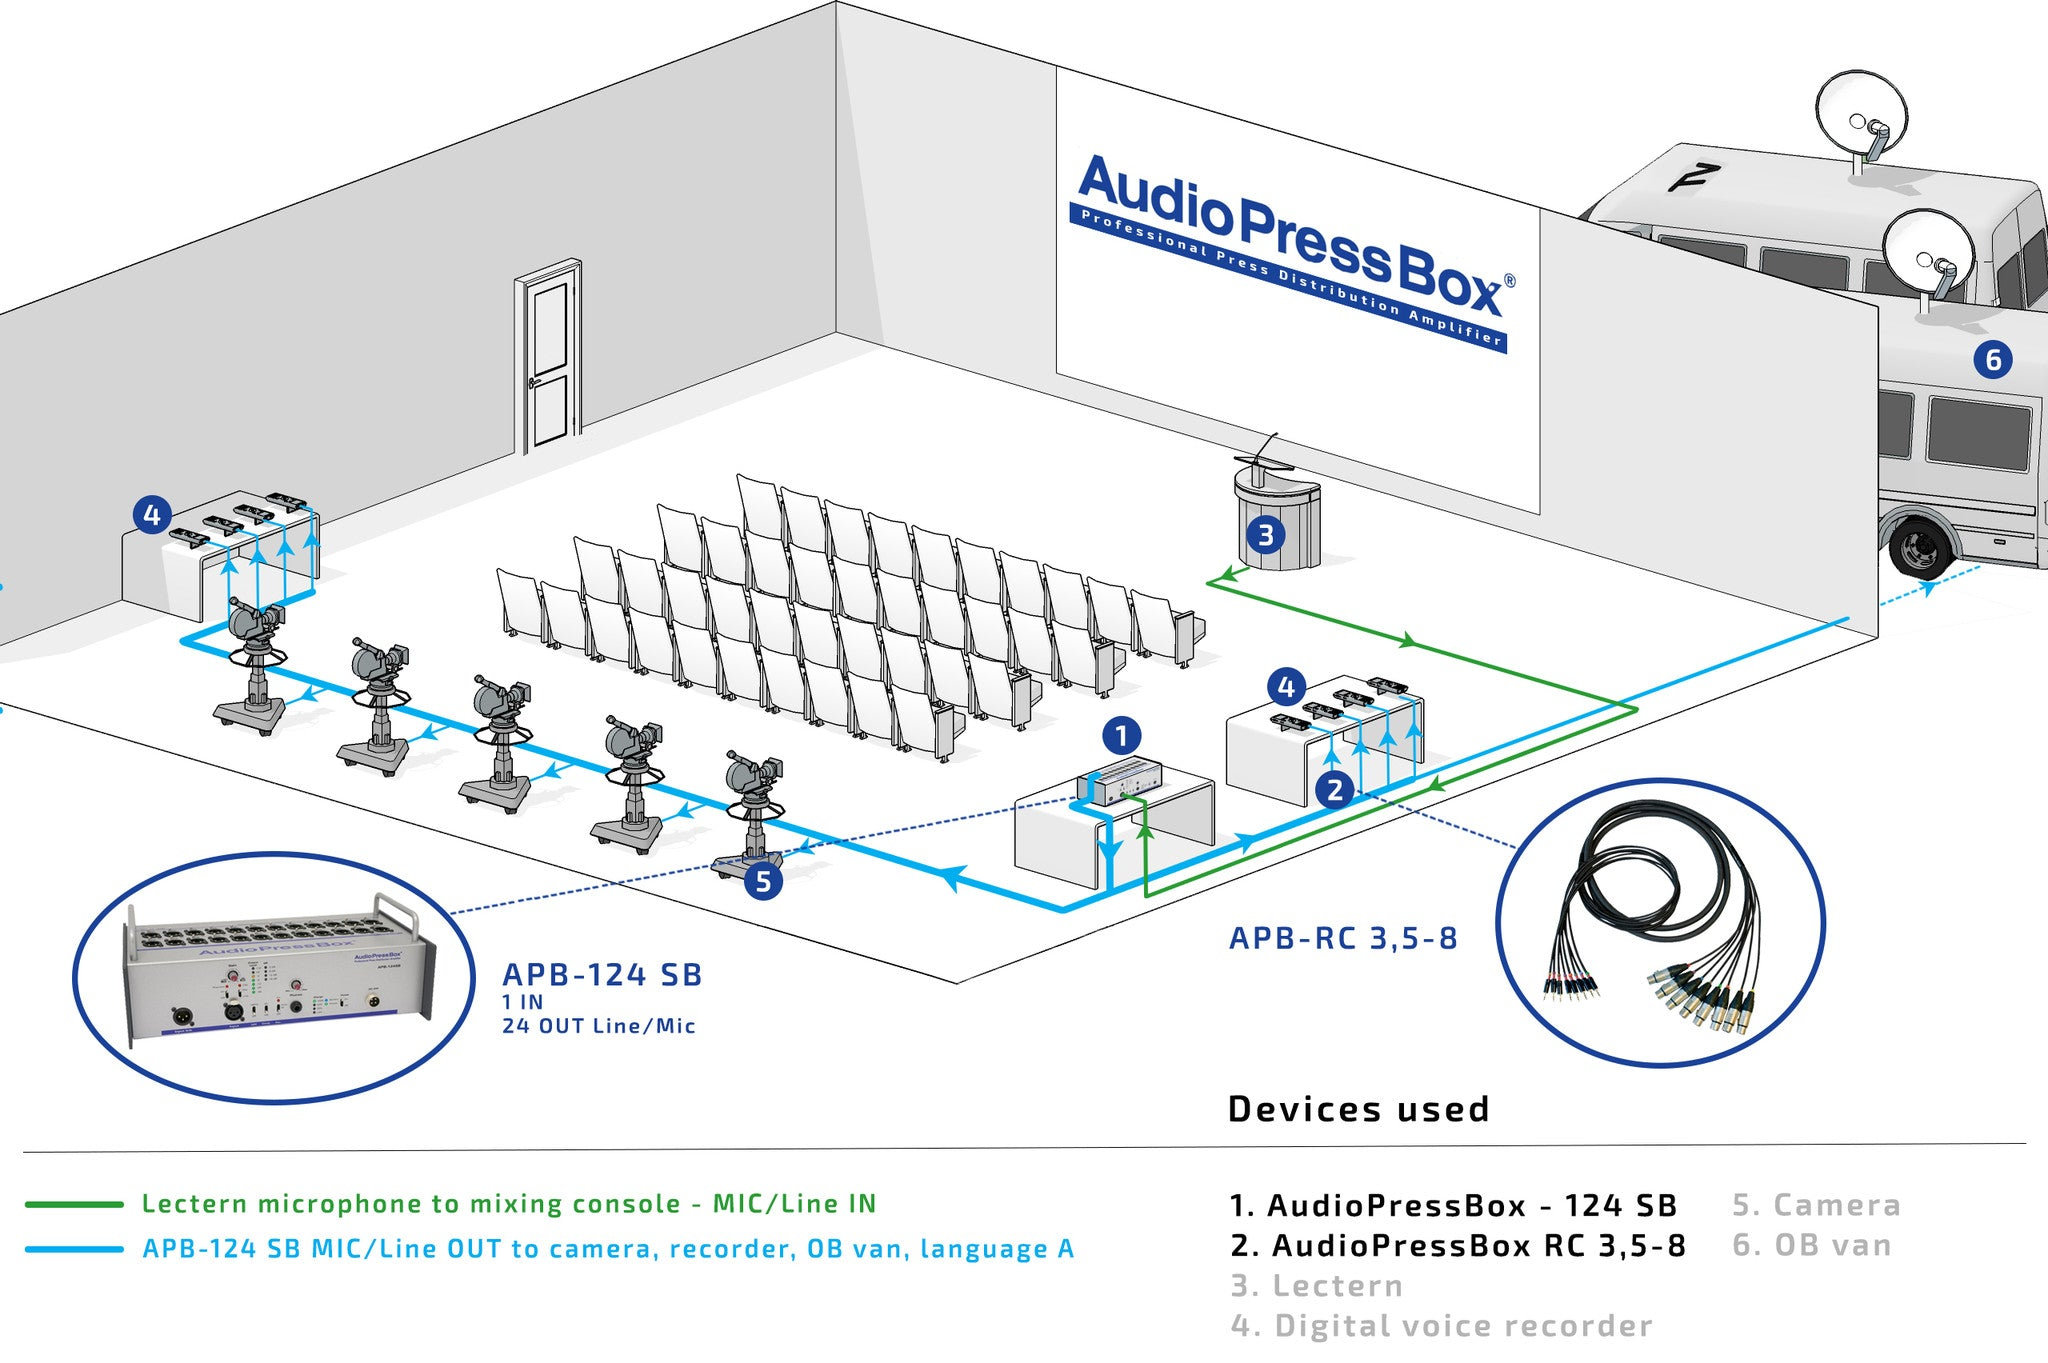 AudioPressBox, Mult Box, PressBox, Mult Box, Press Patch Box, Pressesplitter, APB- 124 SB